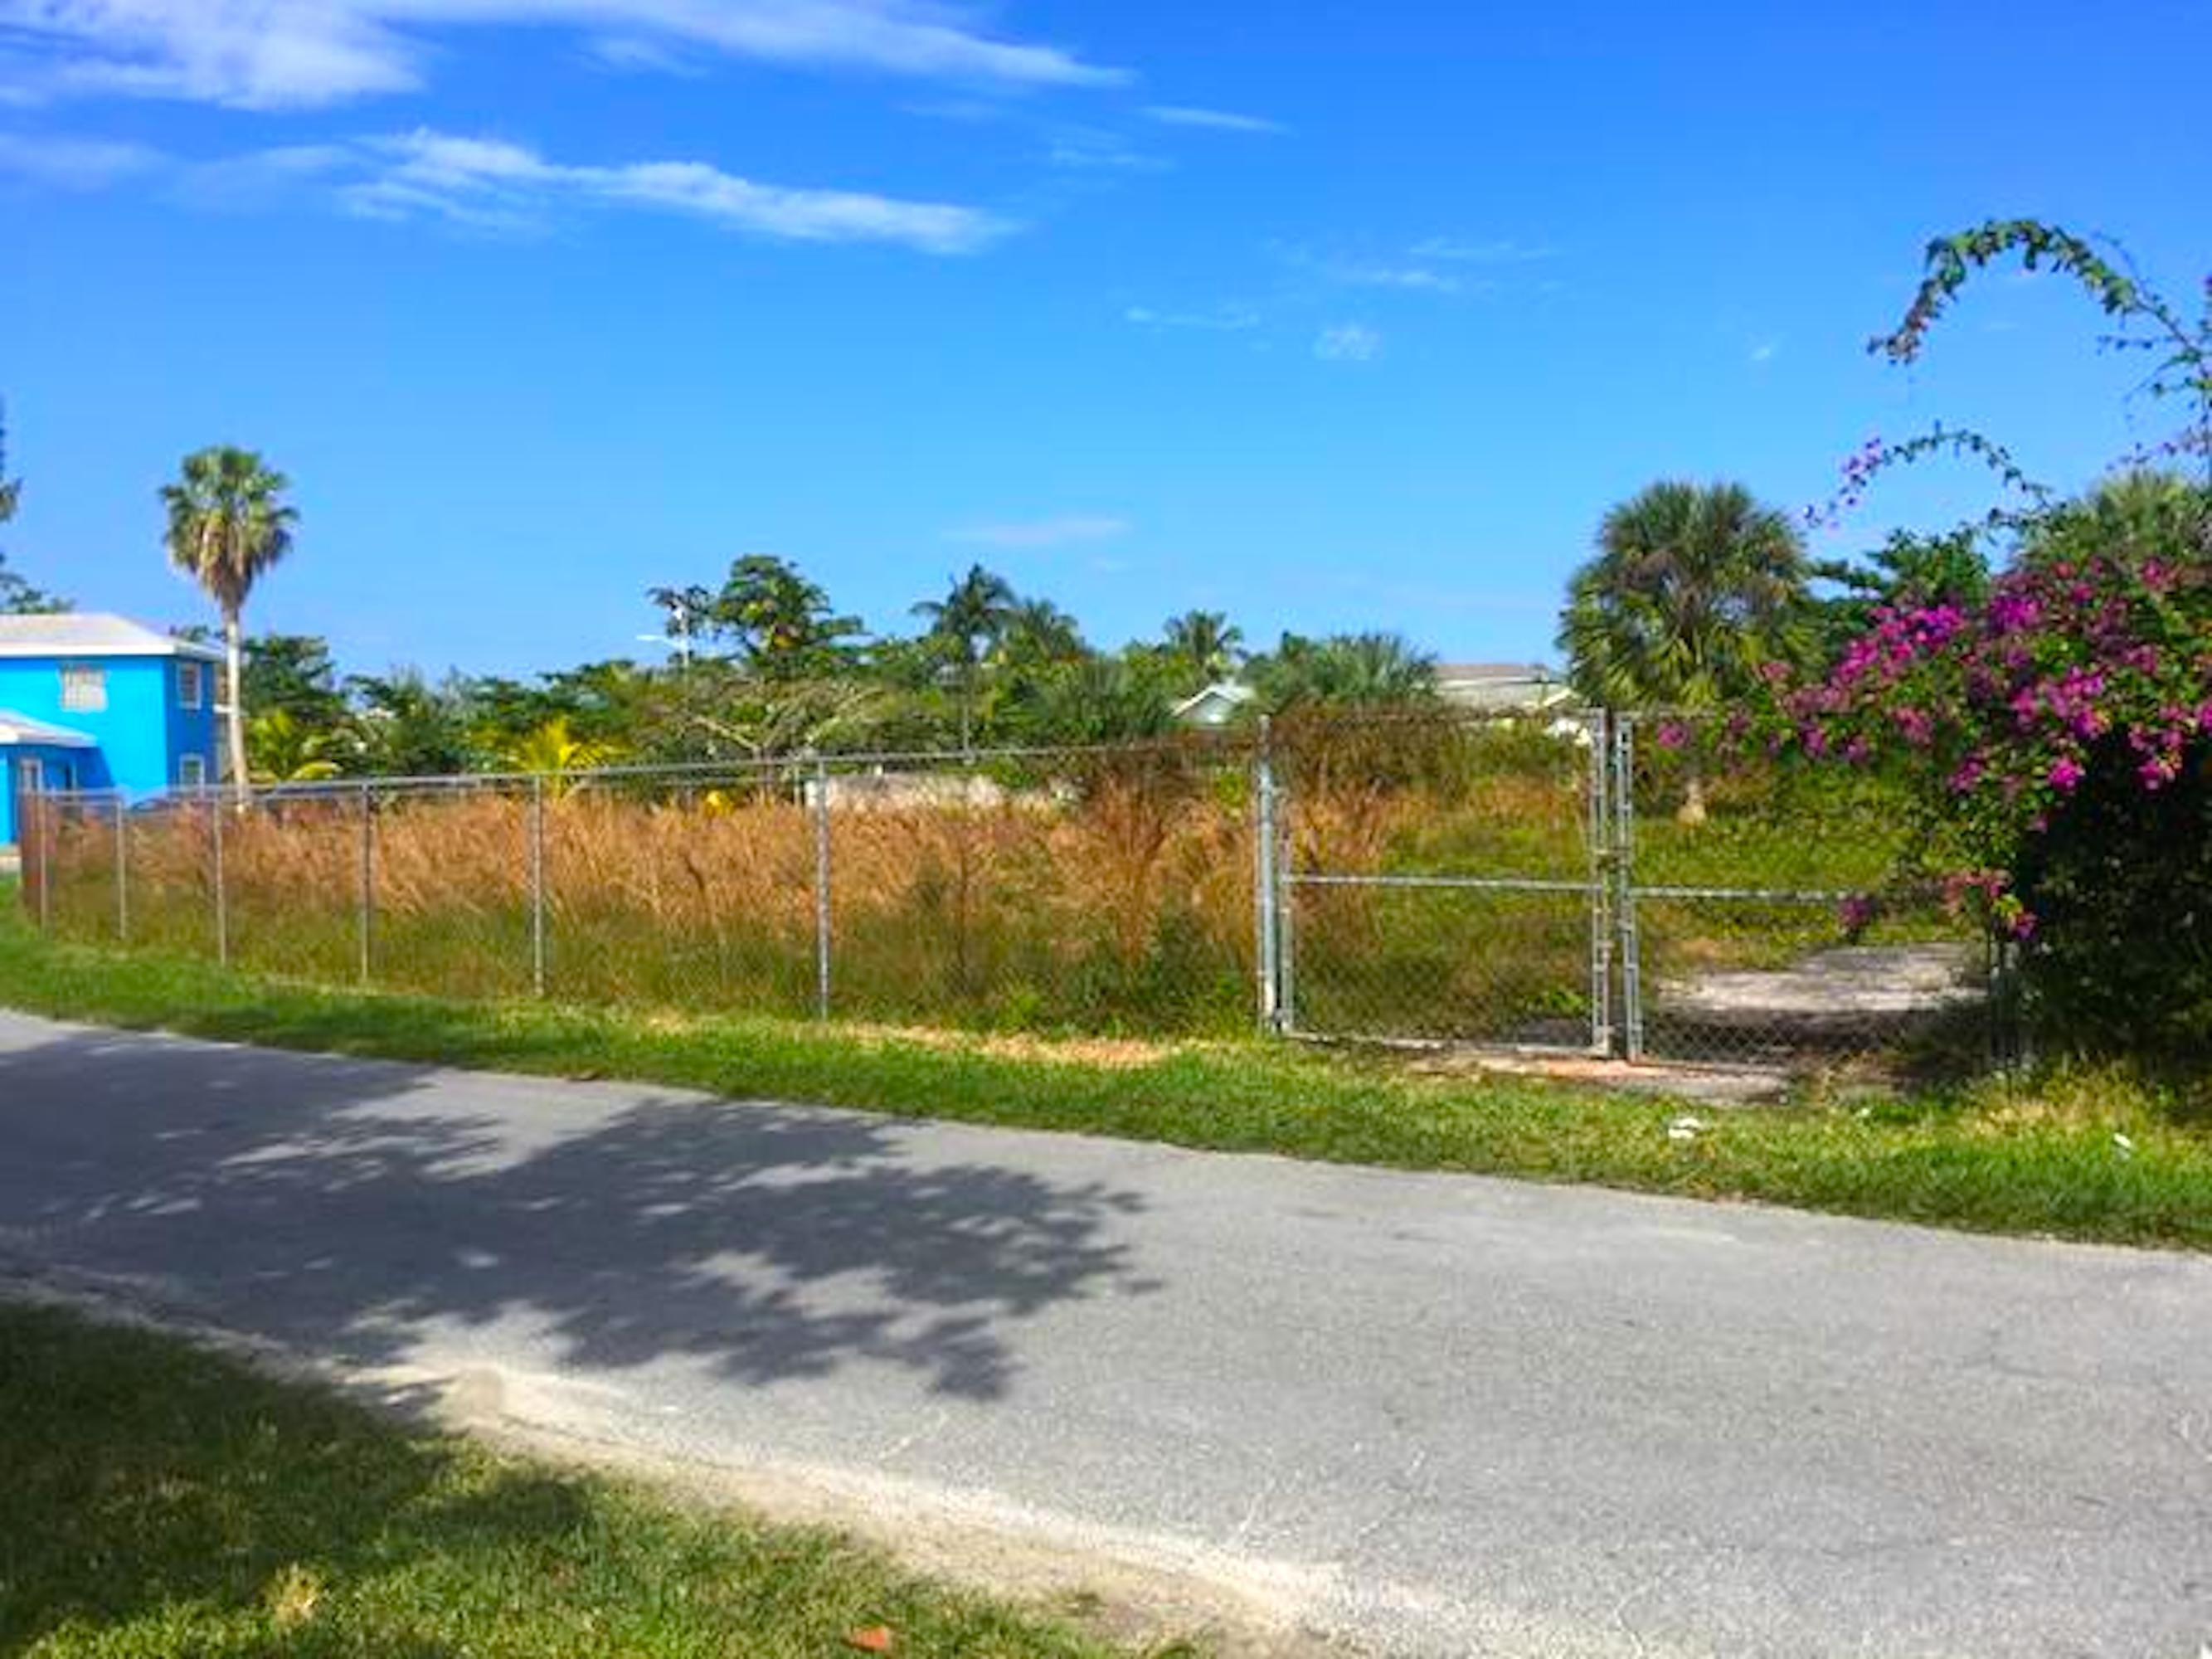 Additional photo for property listing at Large Lot for Sale on Devonshire St, Cable Beach Cable Beach, Nassau And Paradise Island, Bahamas